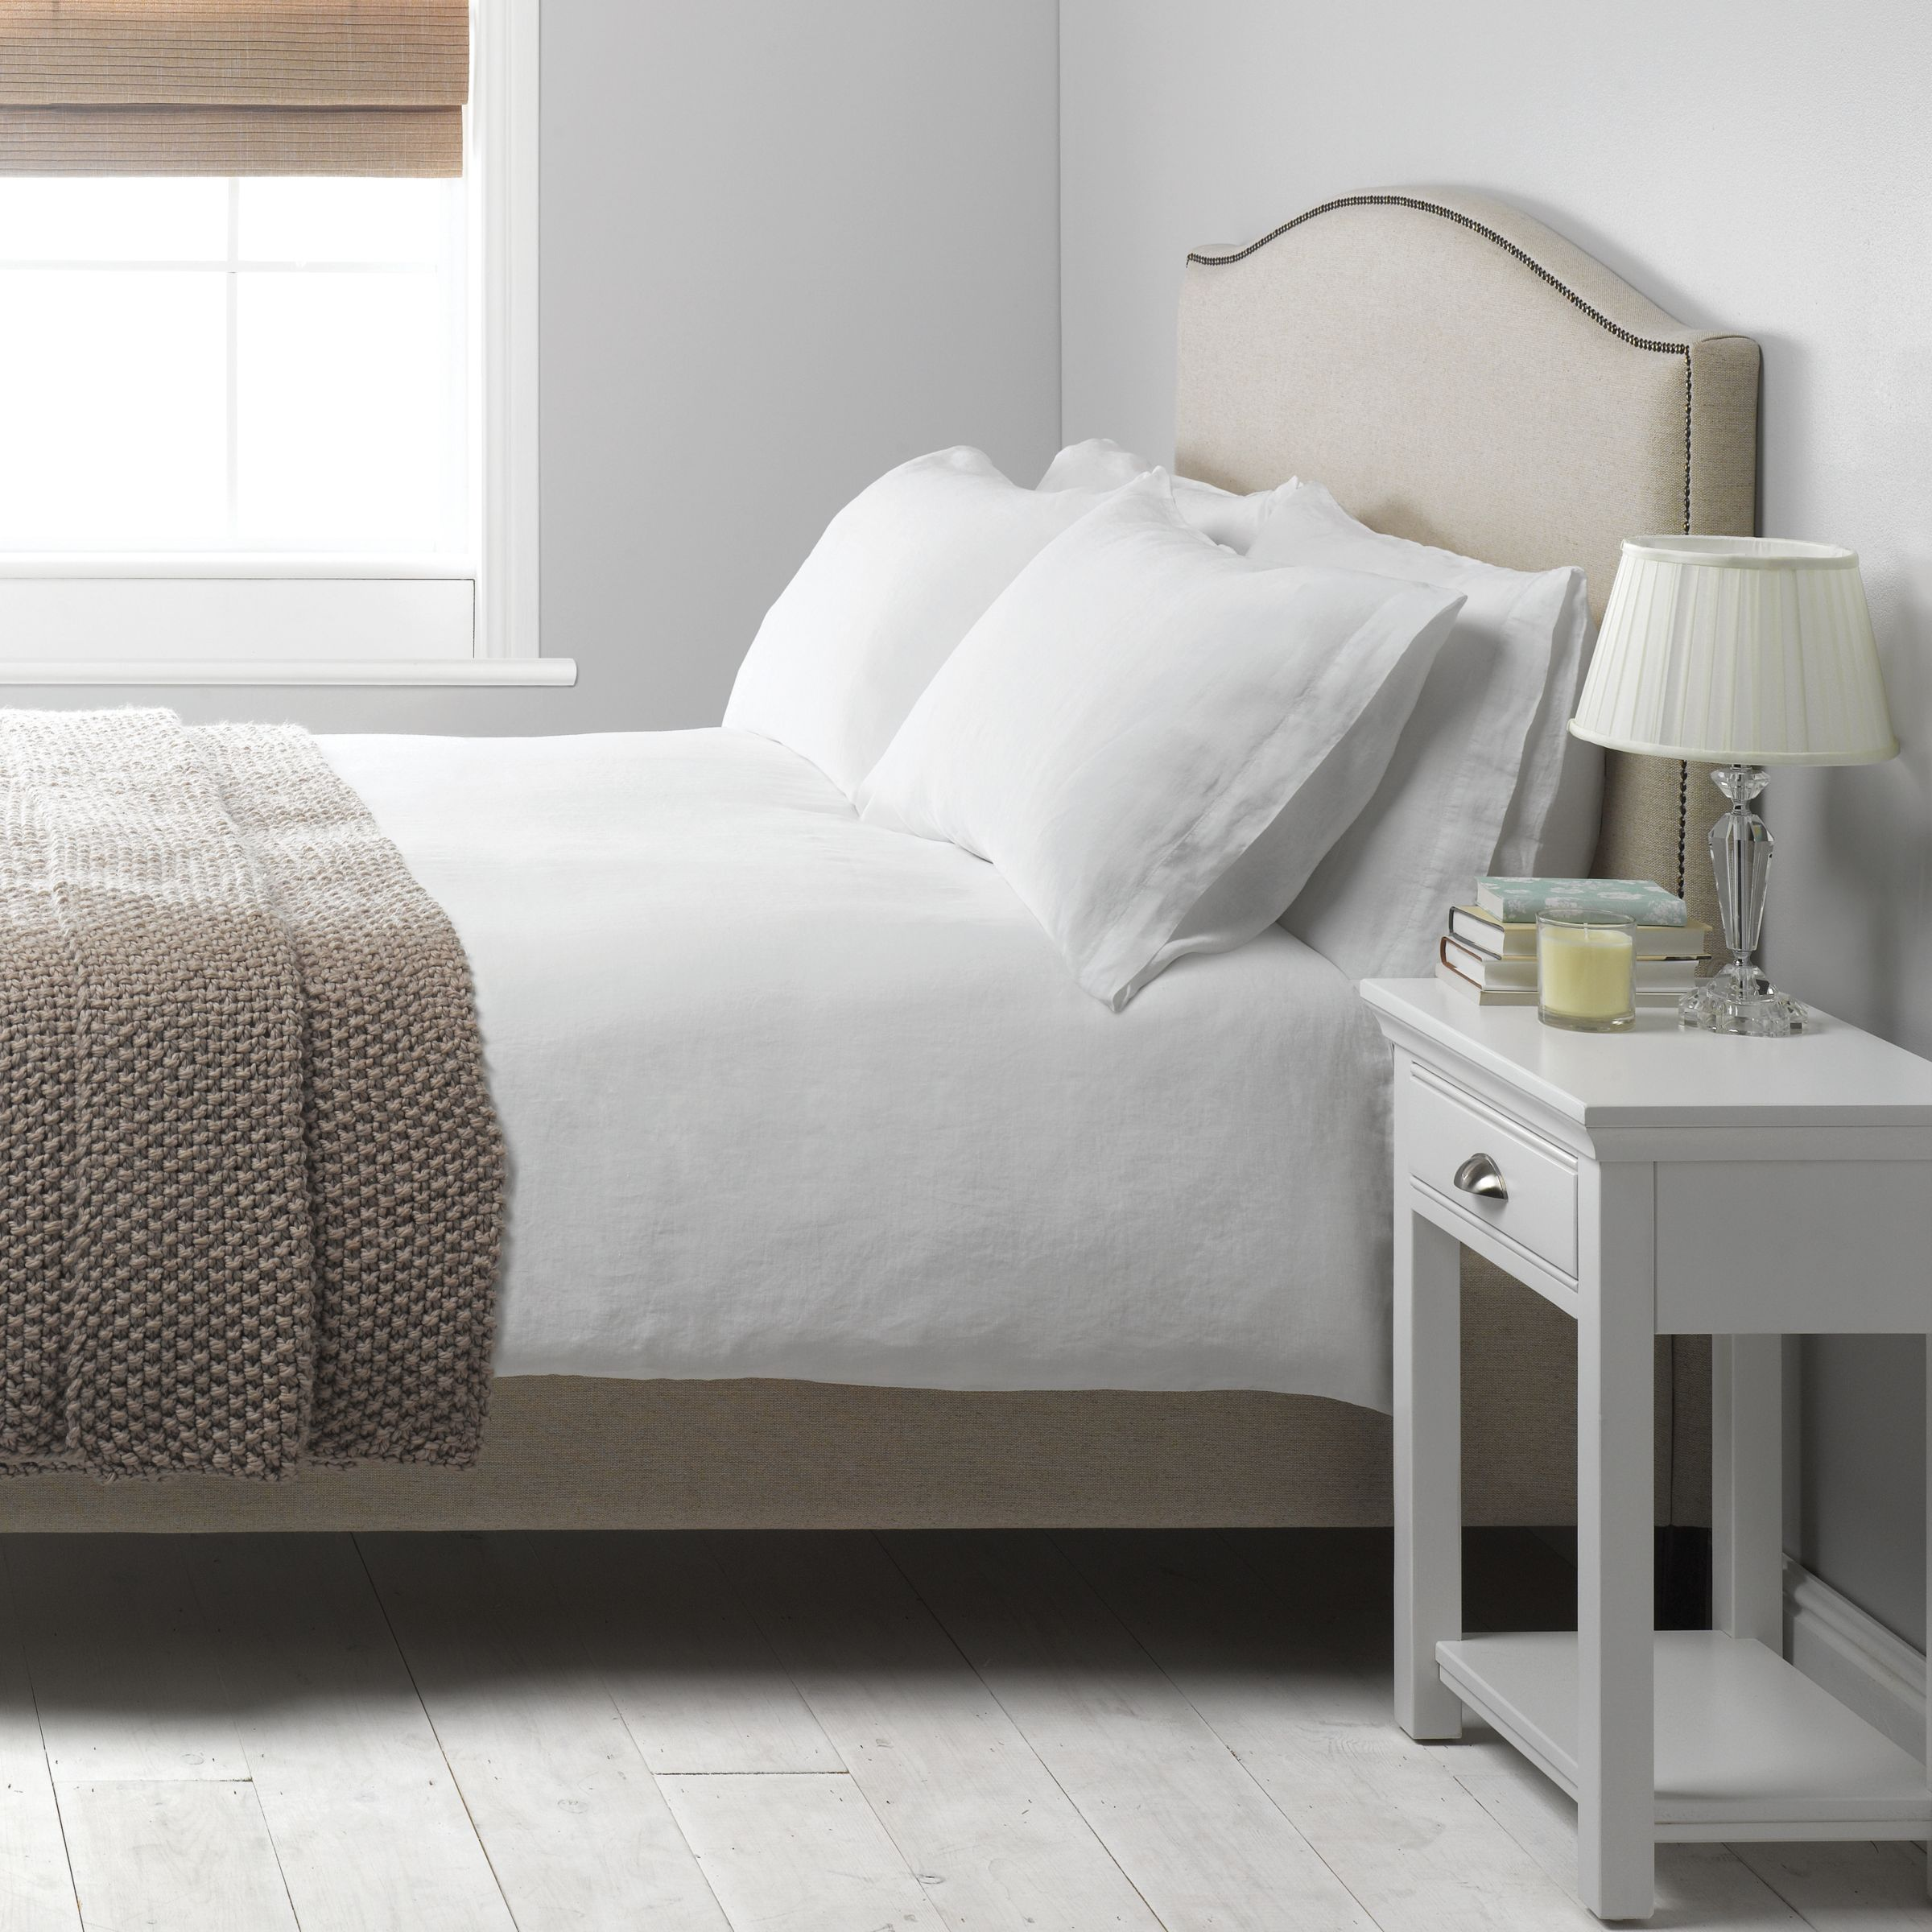 Linen Duvet Covers Bedding And Made From Natural John Lewis